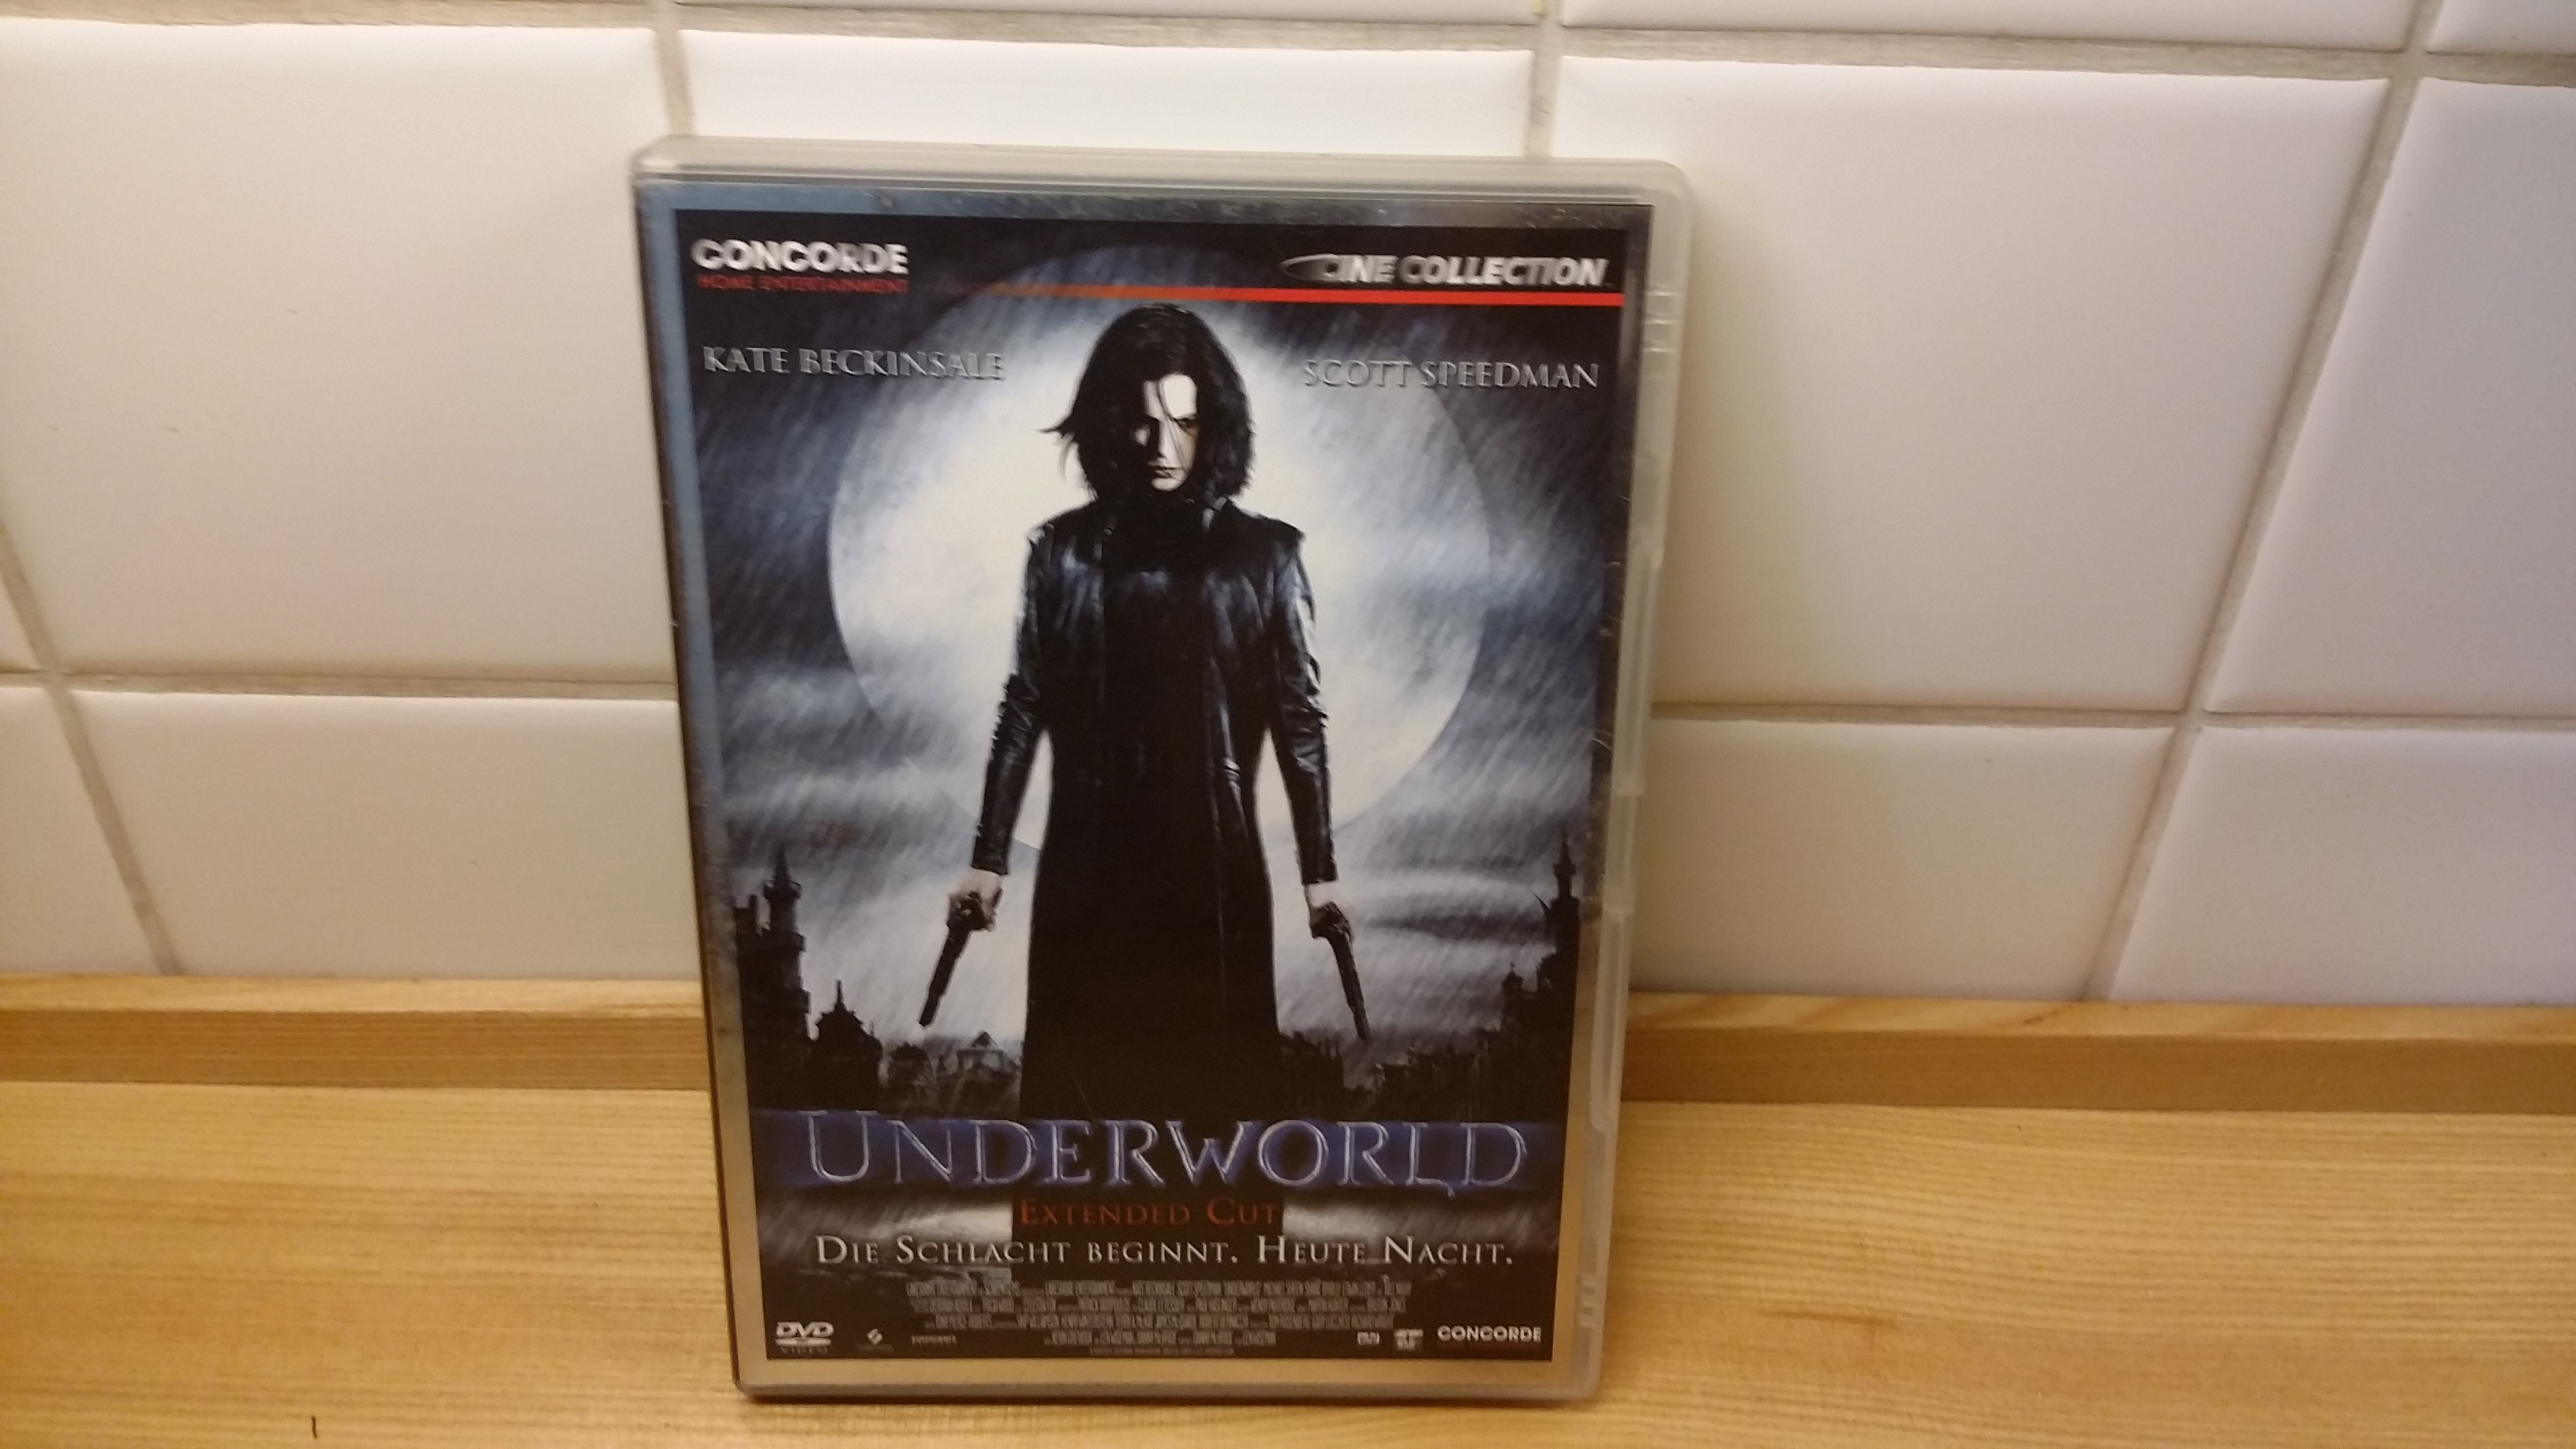 DVD underworld extended cut tauschen